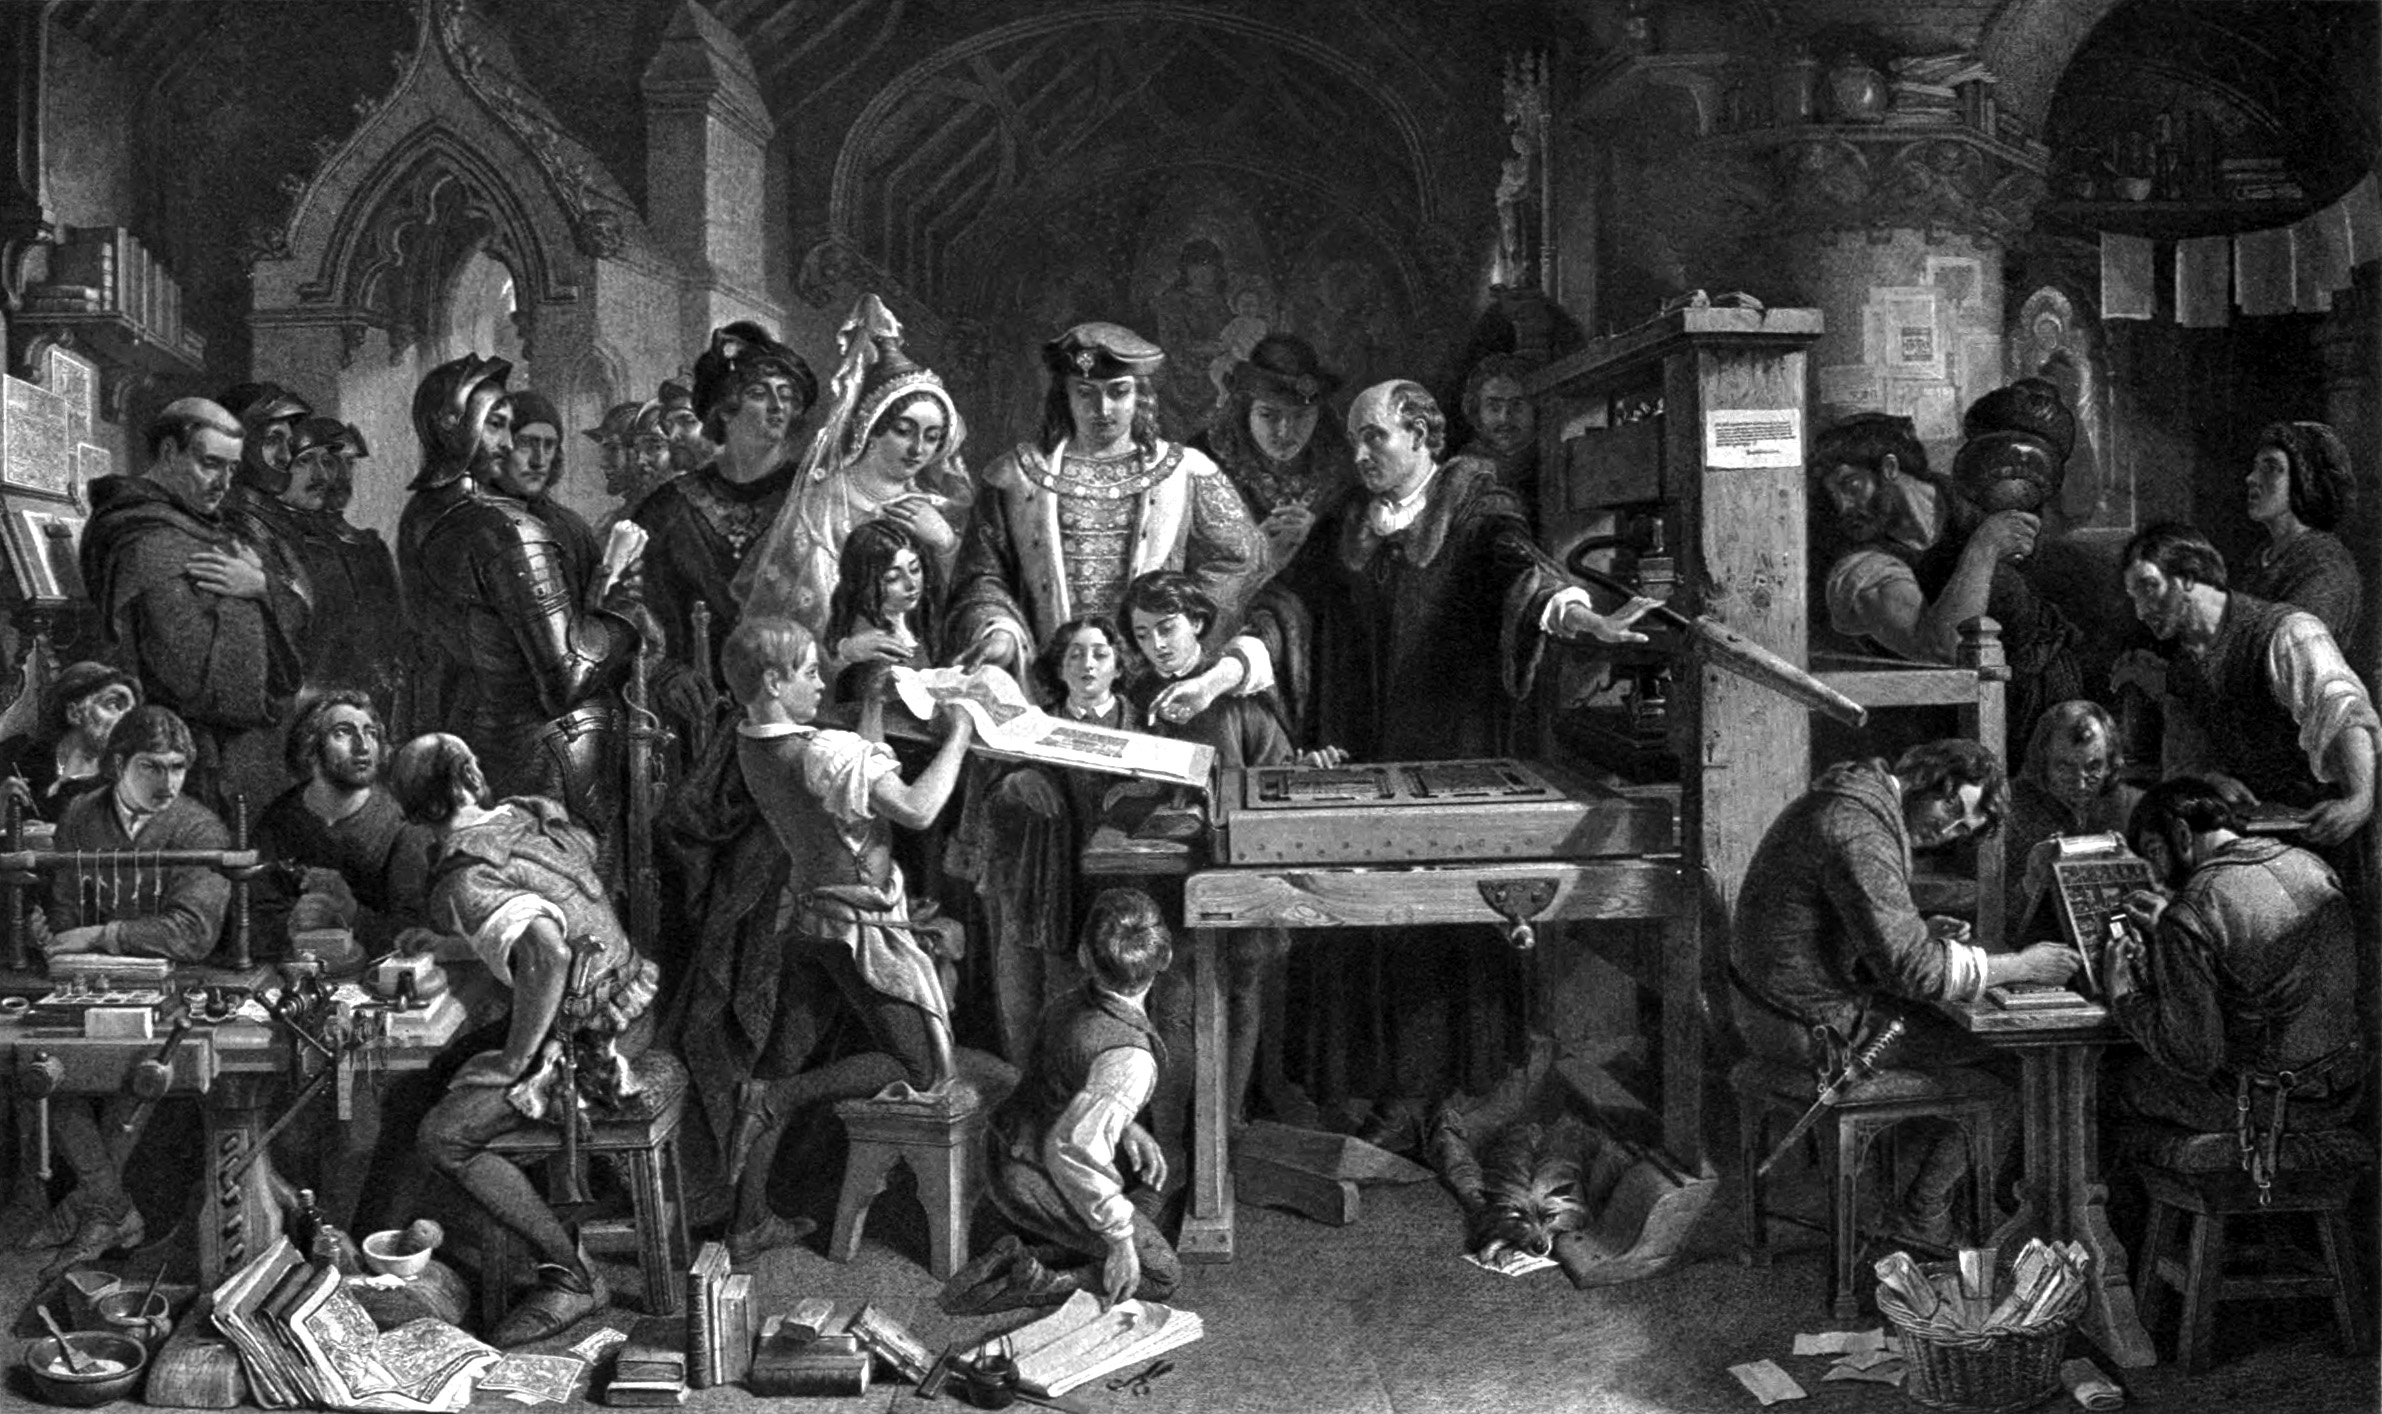 How Did the Printing Press and Movable Type Affect the Renaissance?